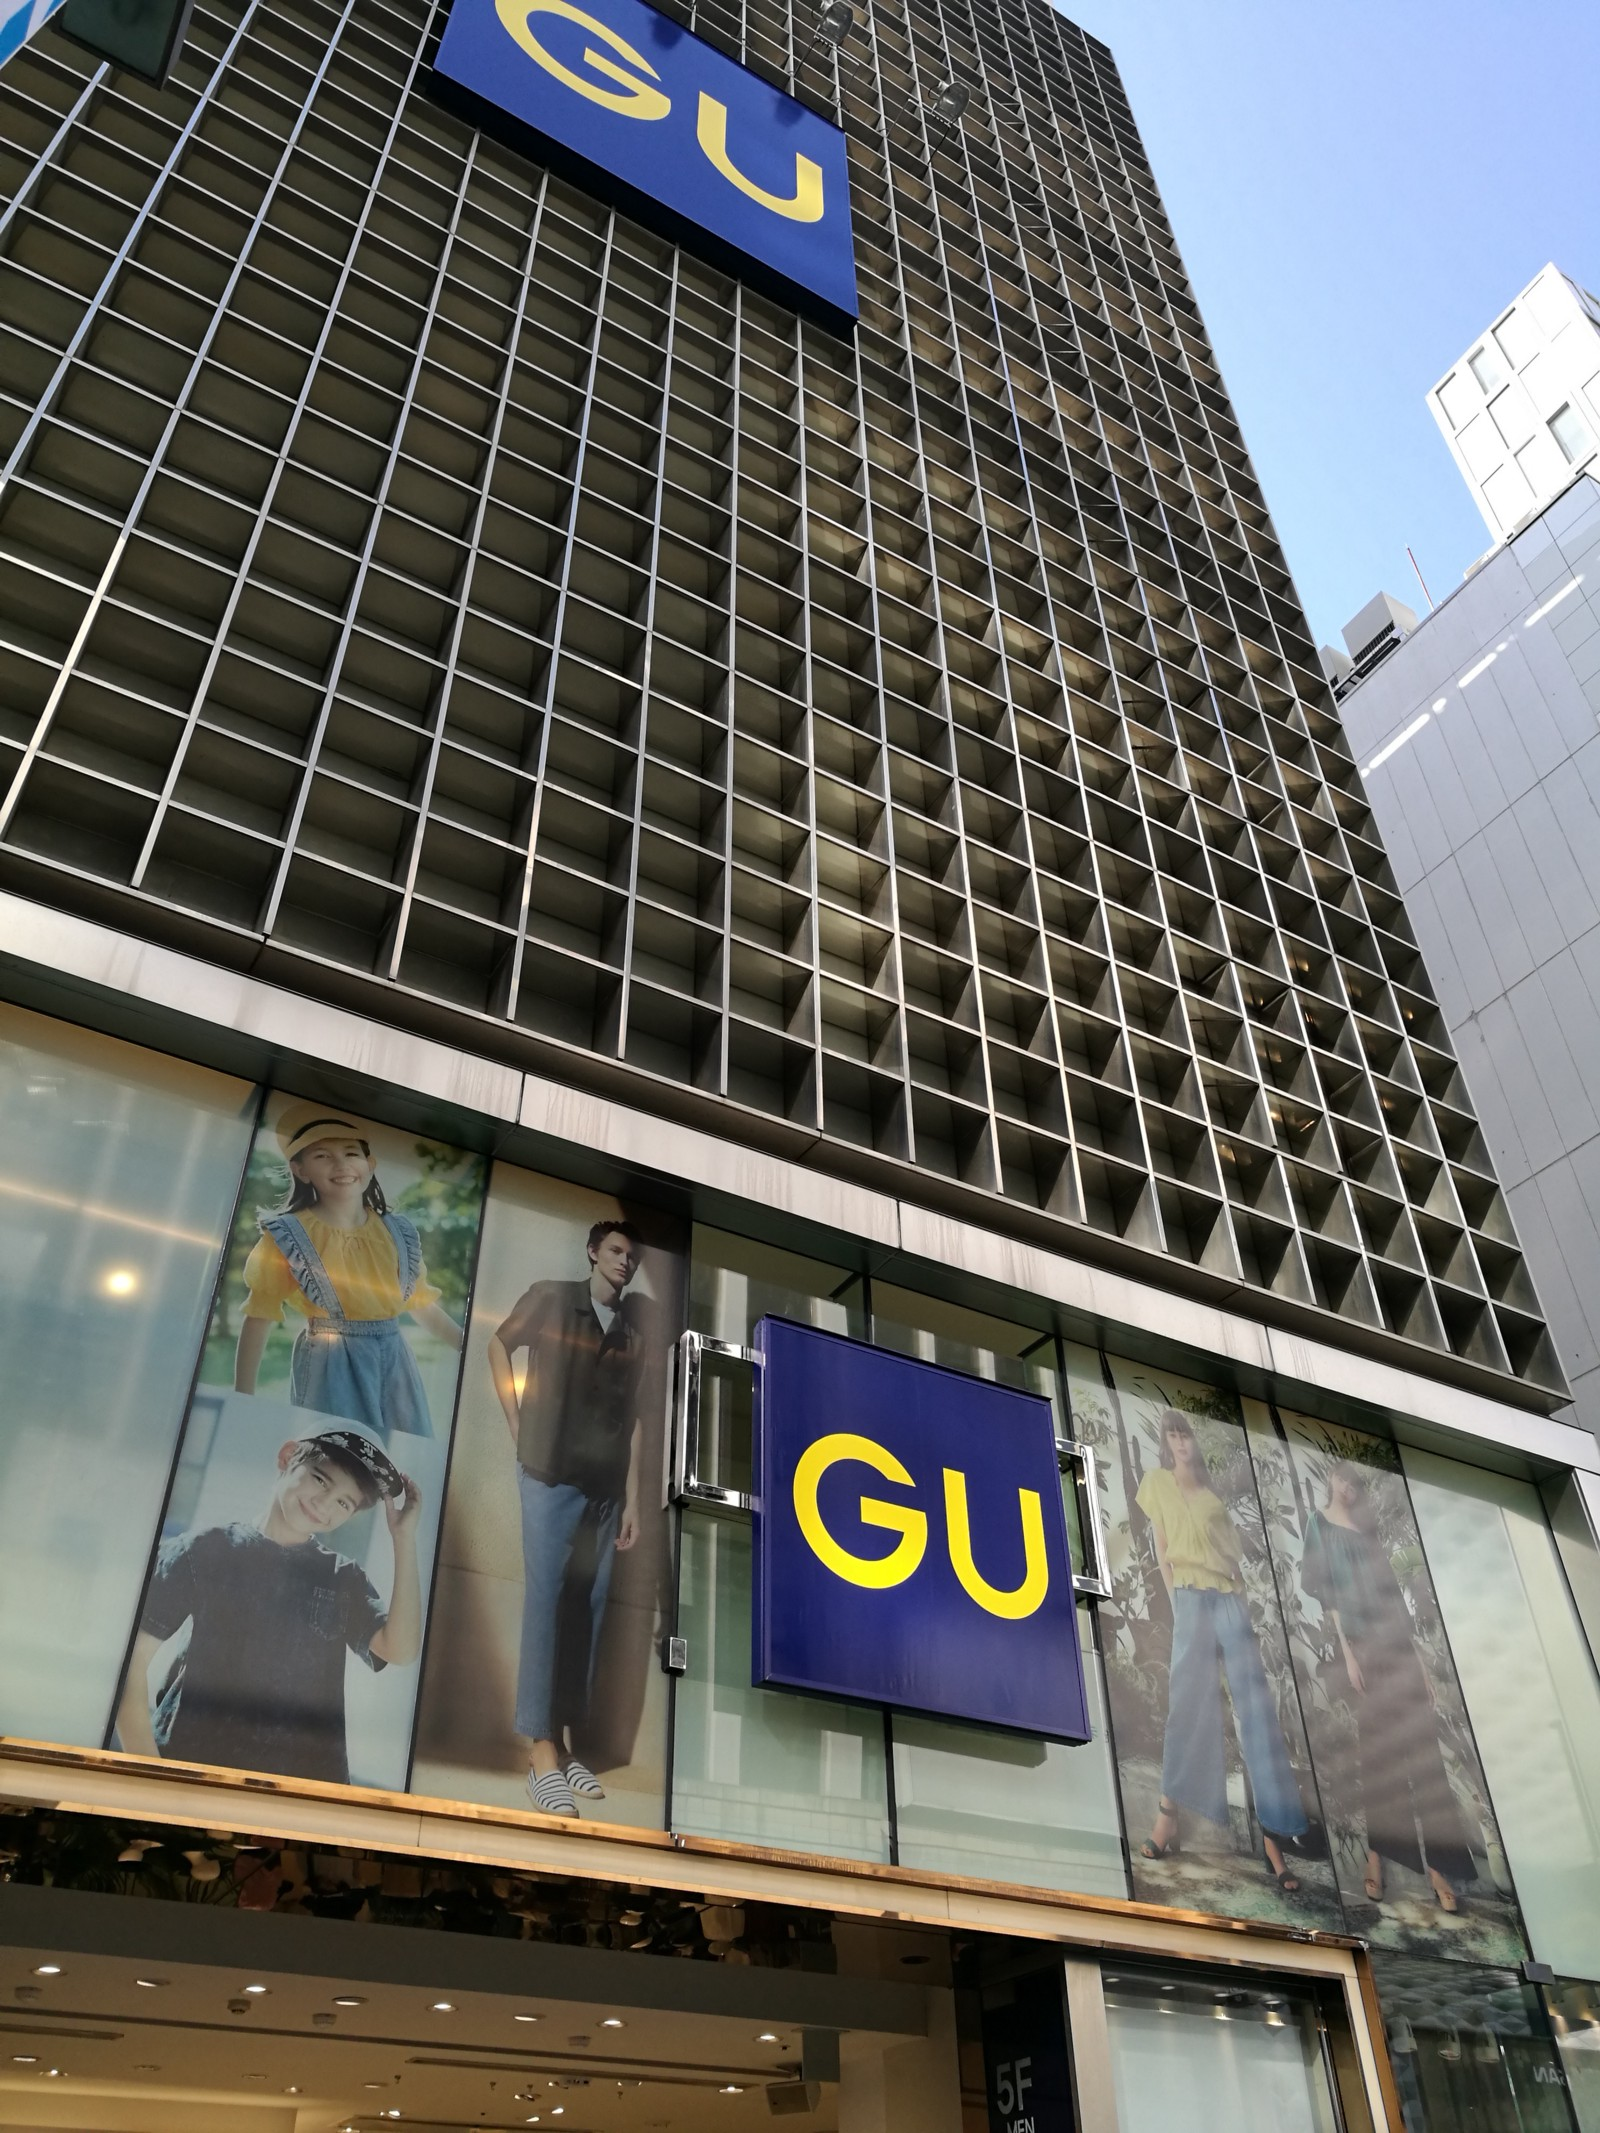 Ginza Shopping Guide : 15 Best Shops in Ginza - Japan Web